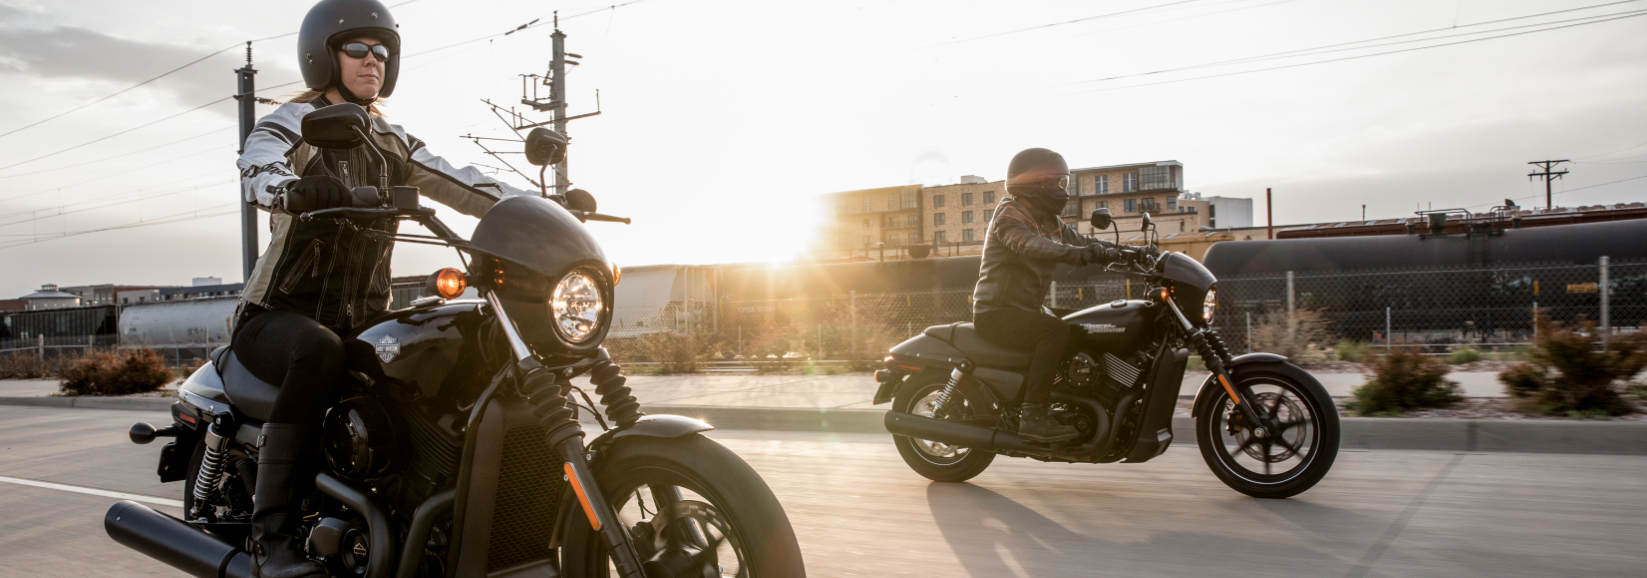 Learn to Ride at Harley-Davidson® of Macon